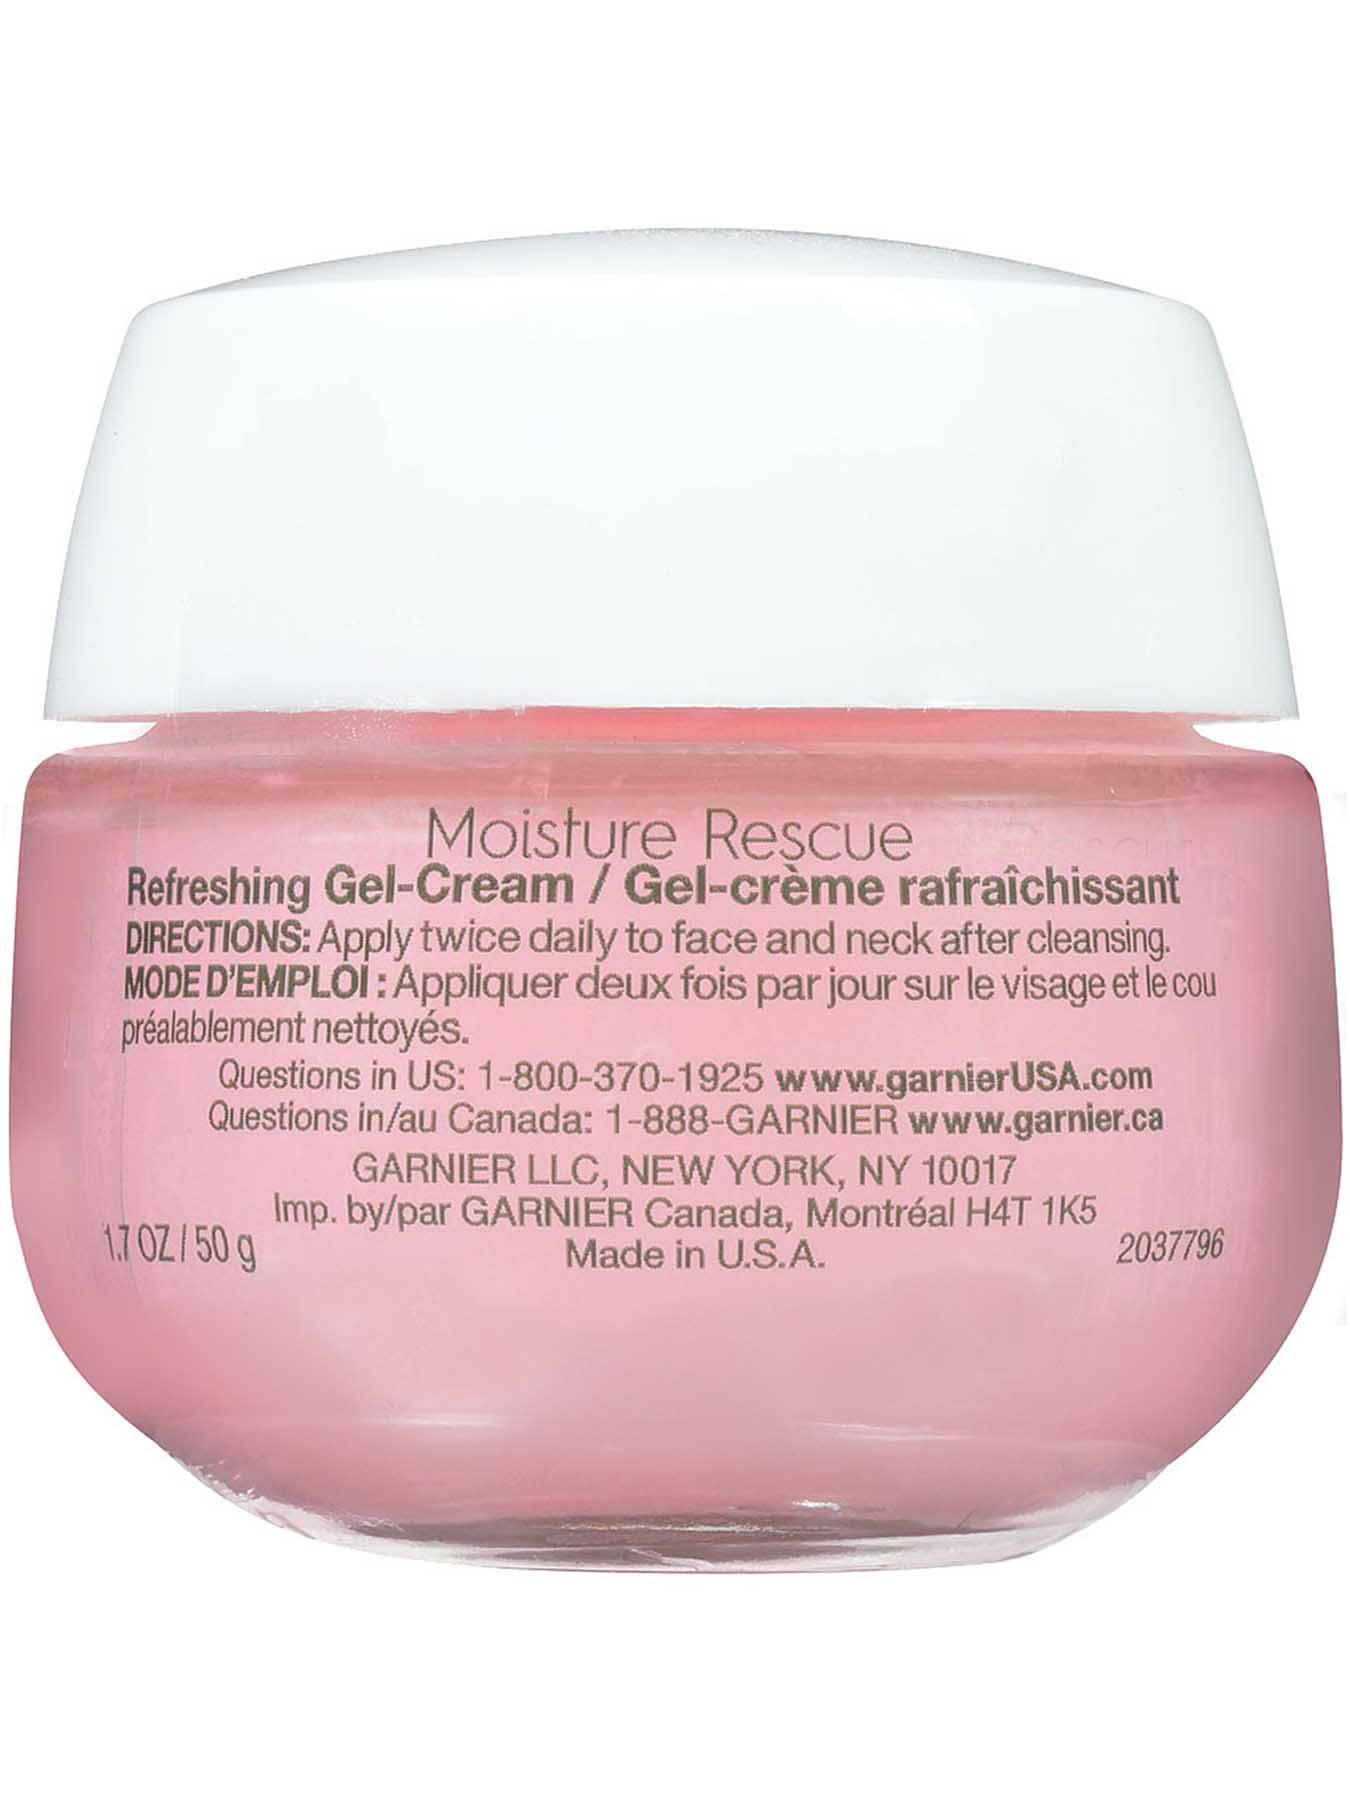 Back view of Moisture Rescue Refreshing Gel Cream, Dry Skin.